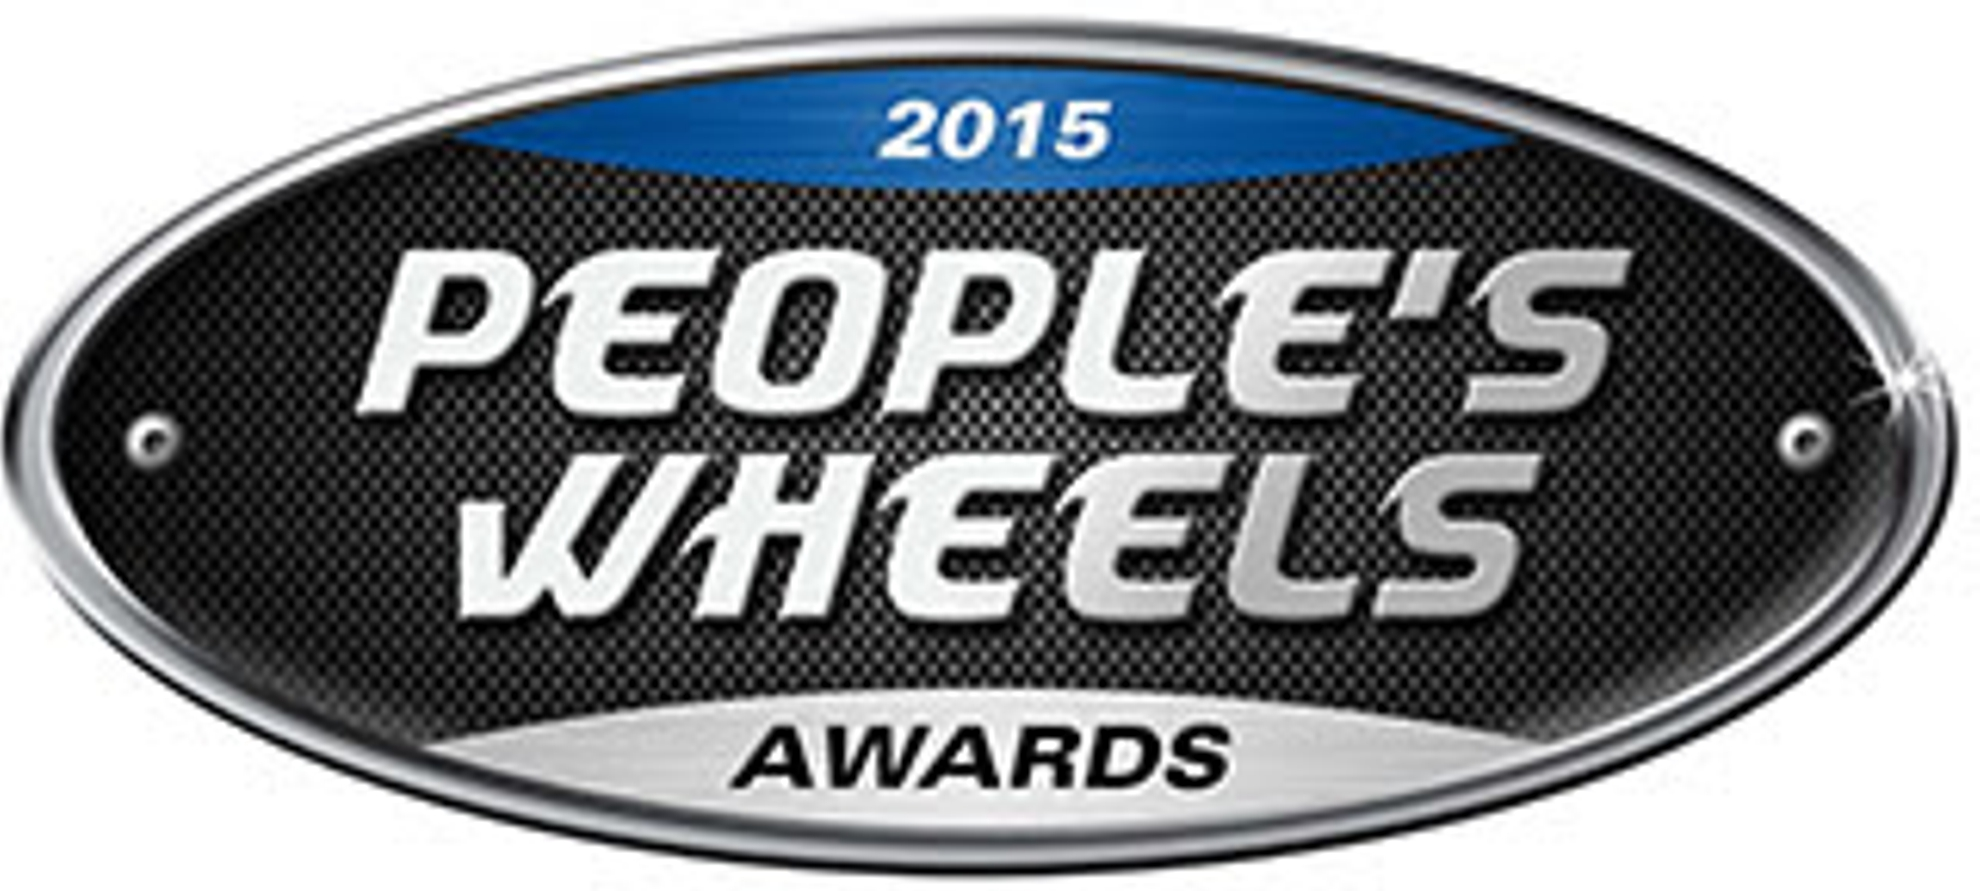 standard-bank-people-wheels-awards-2015